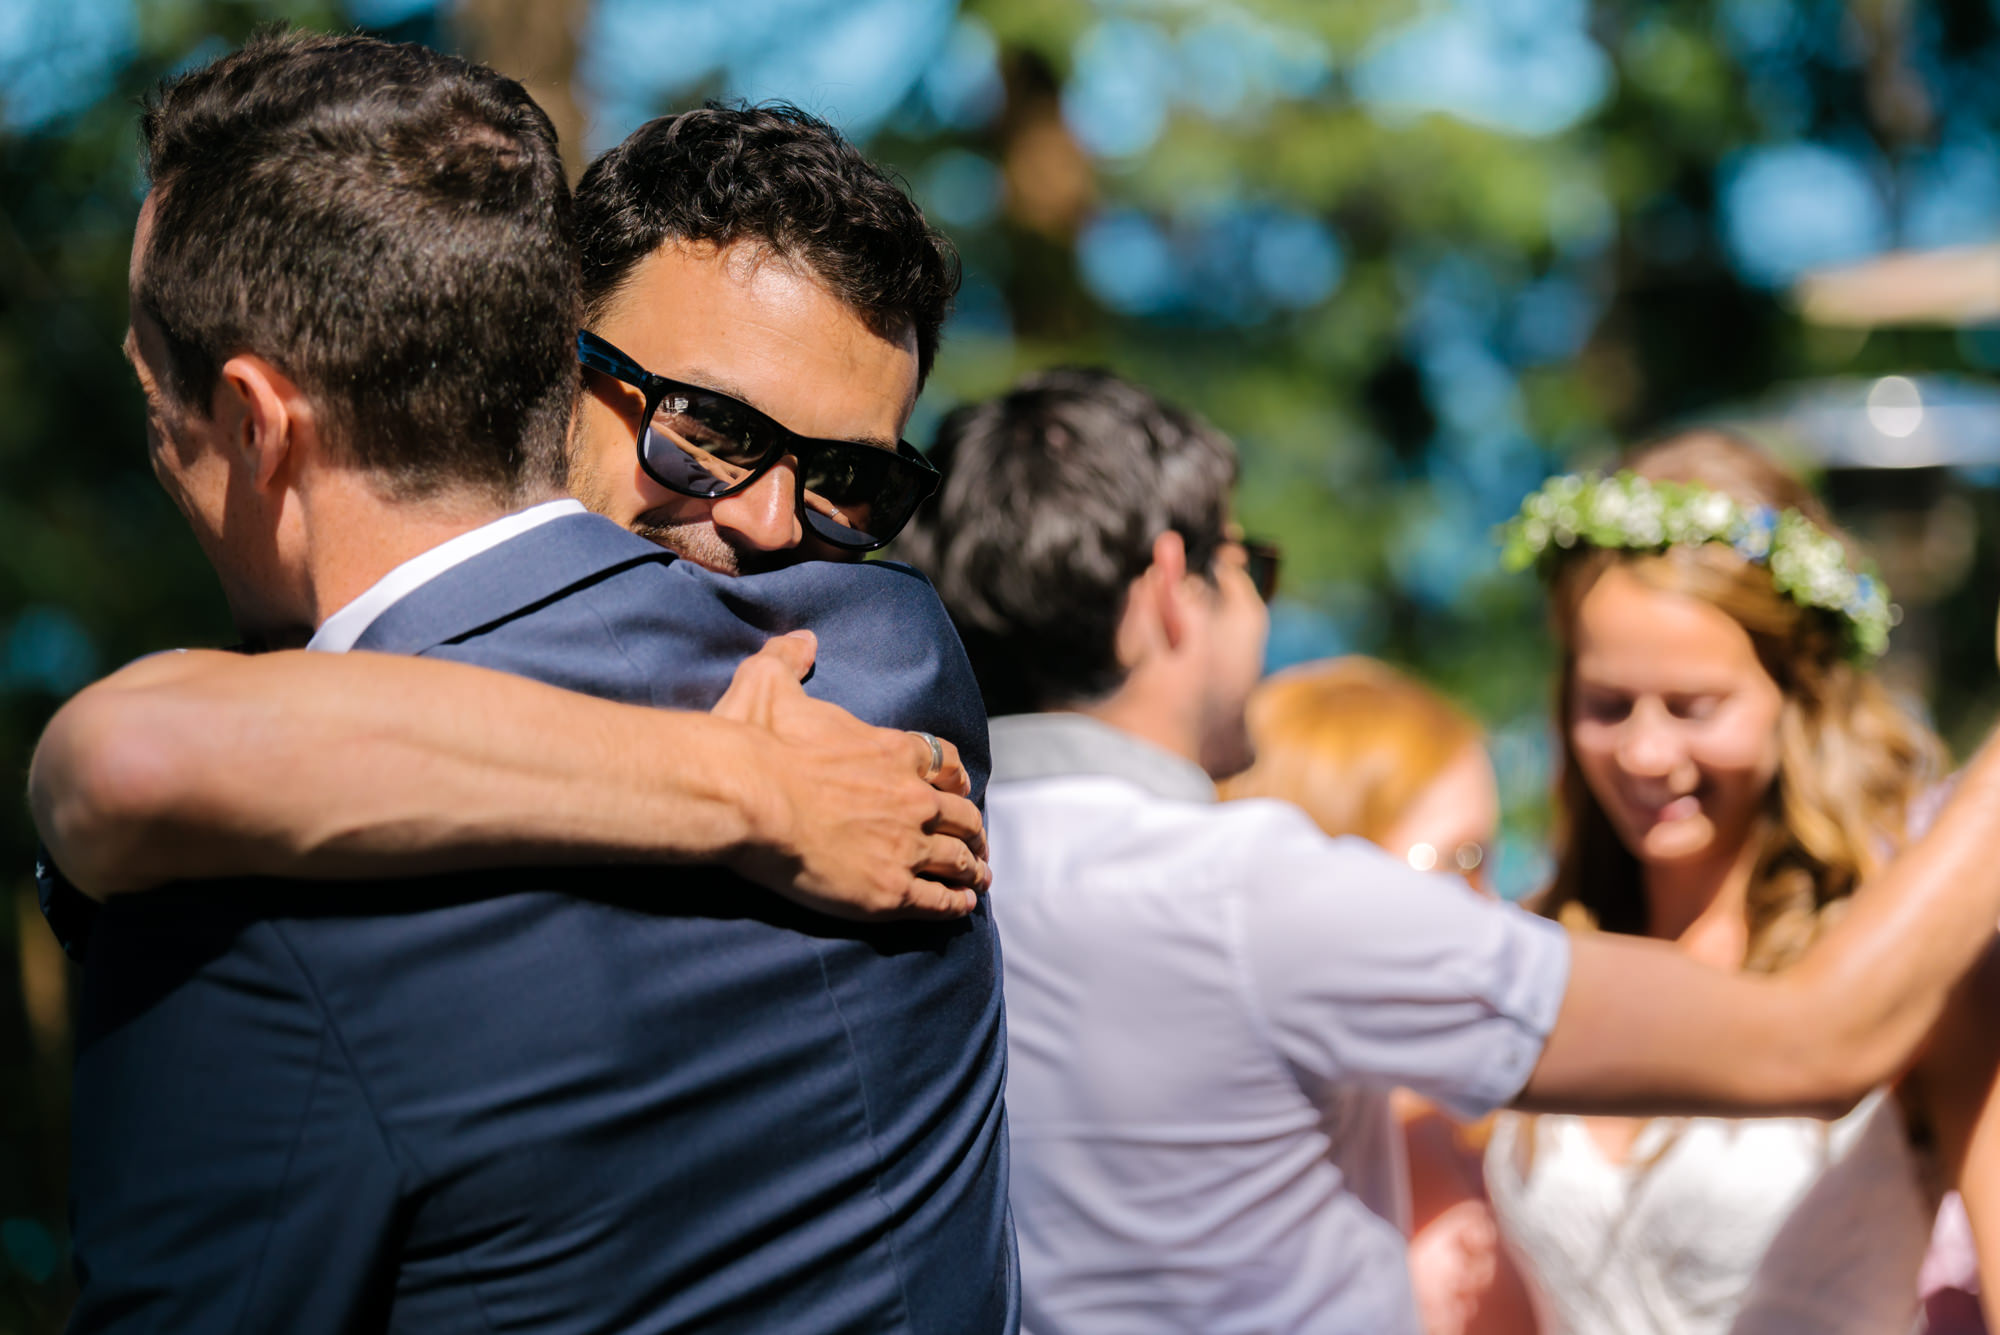 bowen_island_wedding_photographer_vancouver144529_2_kahophotography_weddingphotographer.jpg